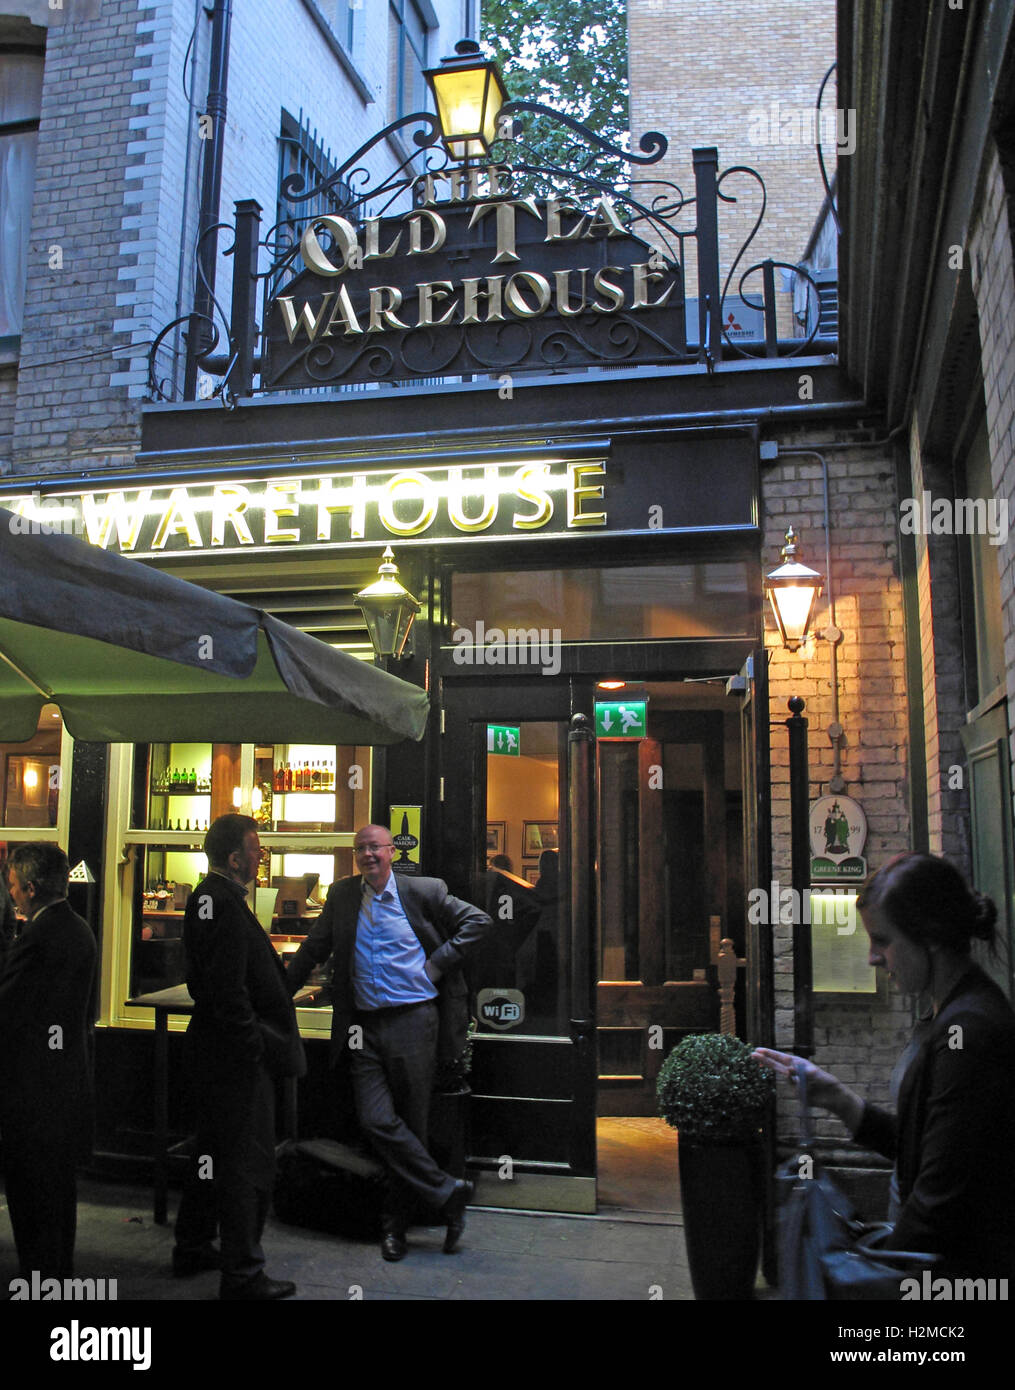 The Old Tea Warehouse pub, City Of London, South East England, UK - Stock Image